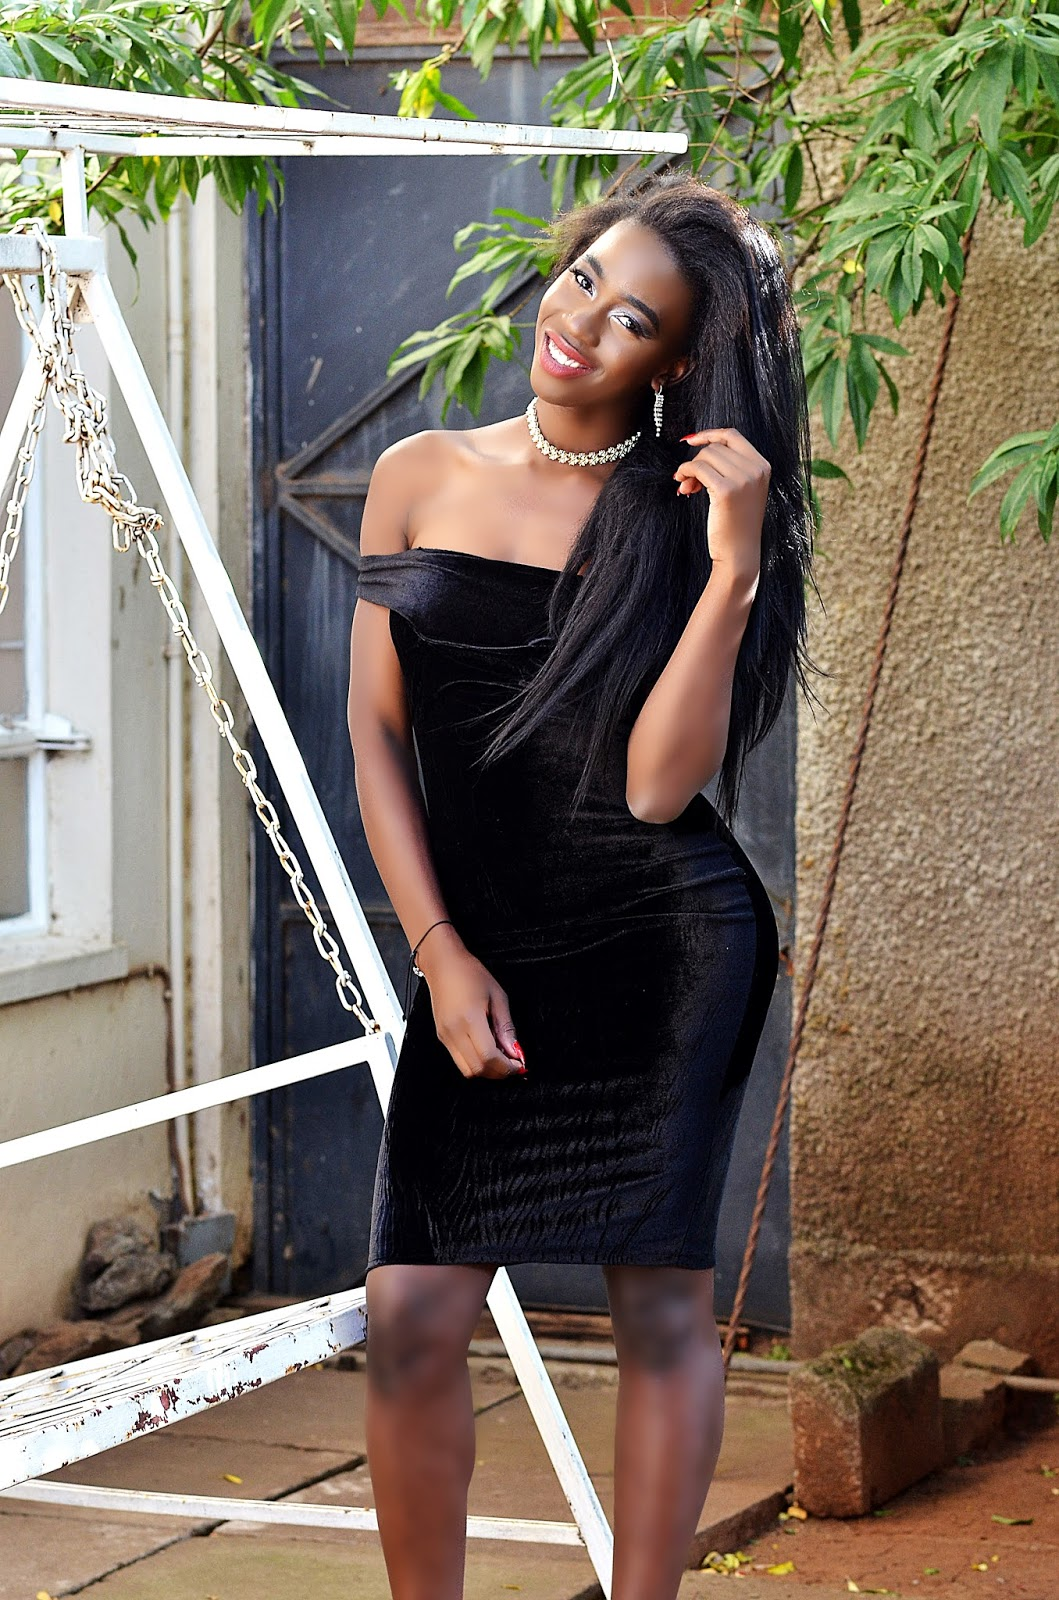 velvet dress, kenyan fashion blogger,  how to wear a velvet dress, off shoulder dress, little black dress, how to look stylish, how to slay in any outfit, how to look classy, style with Ezil, Ezil, Kenyan fashion blogger, fashion blogger.